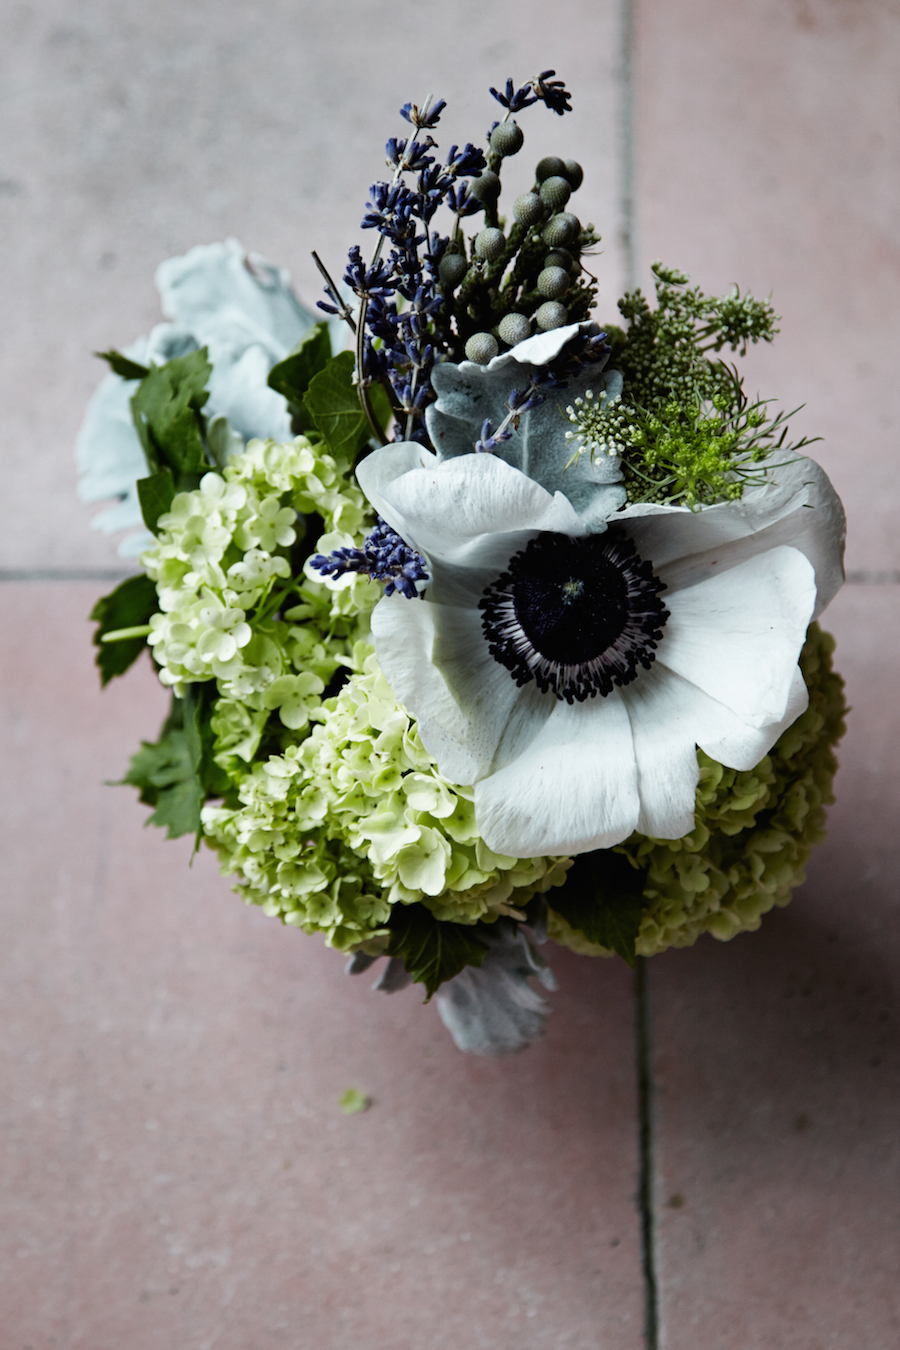 Anemone and Lavender bouquet